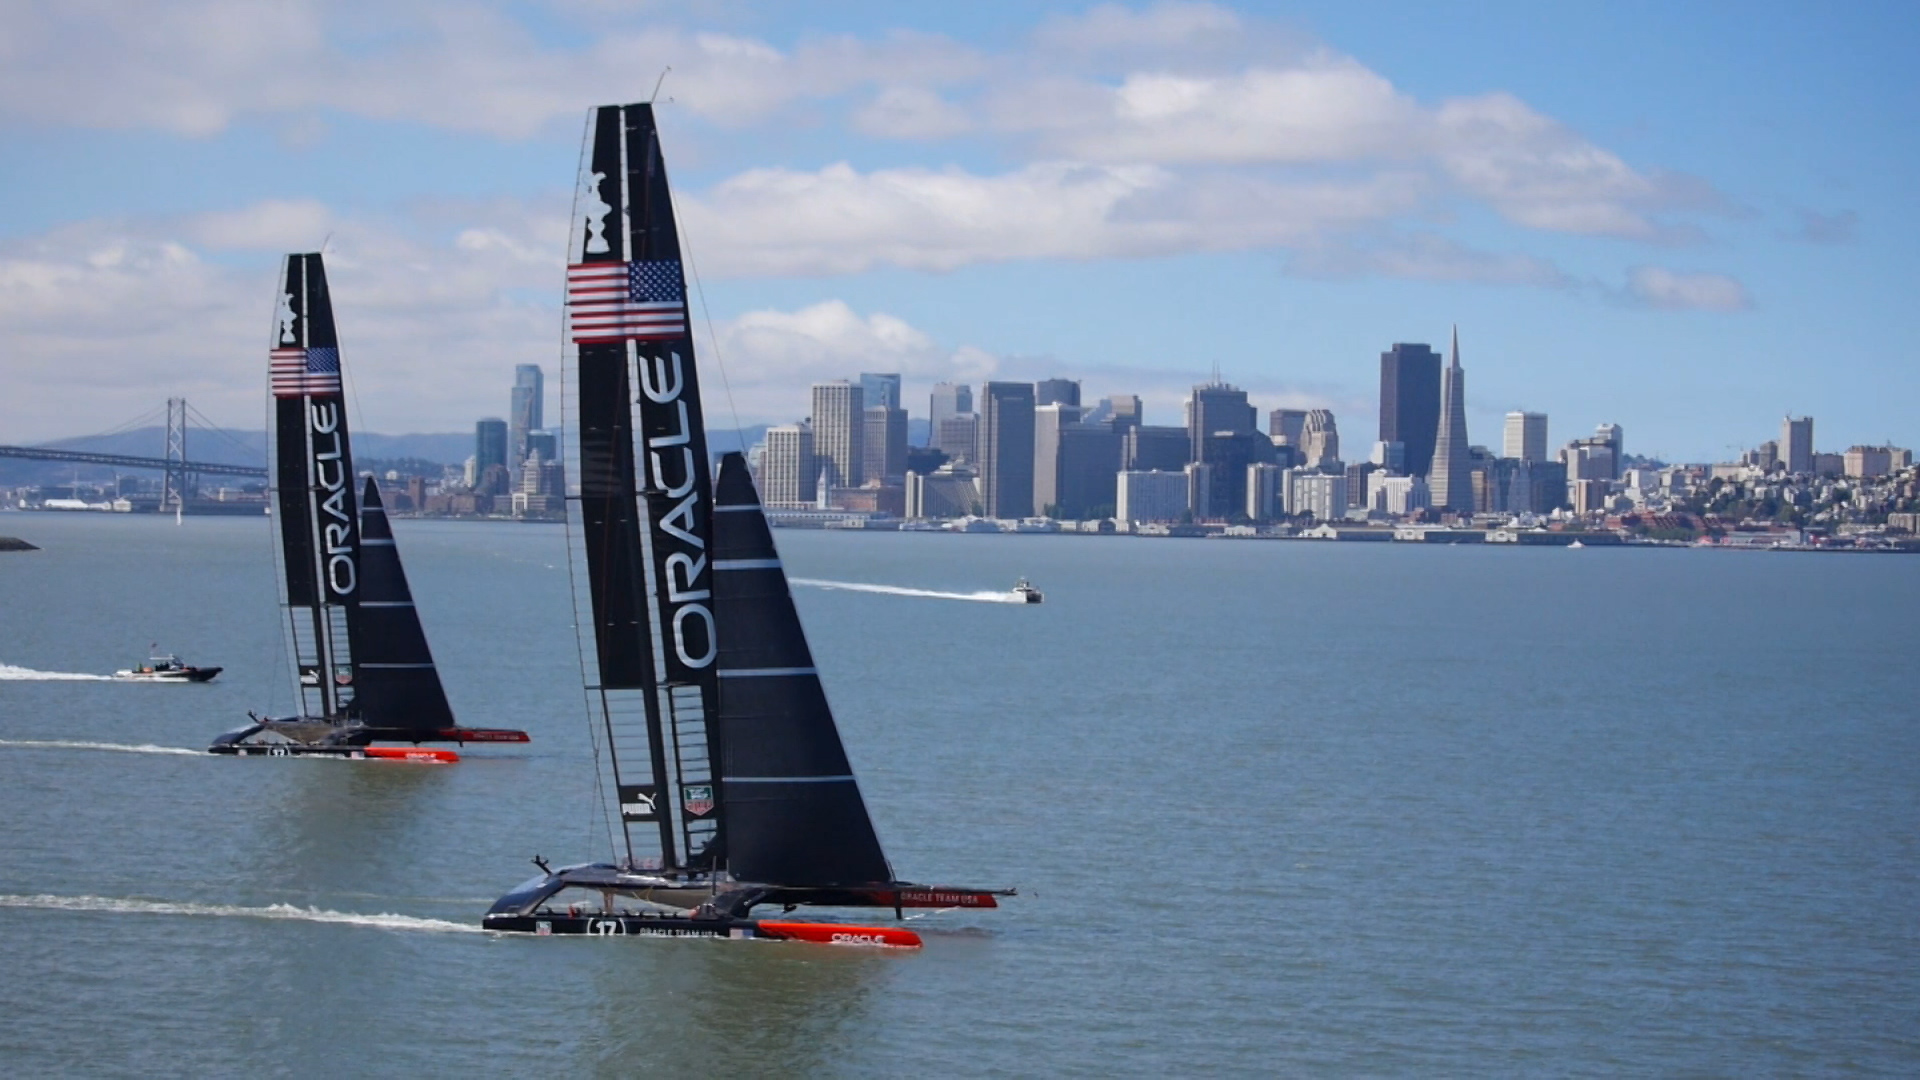 The Visualization Technology Behind The America's Cup